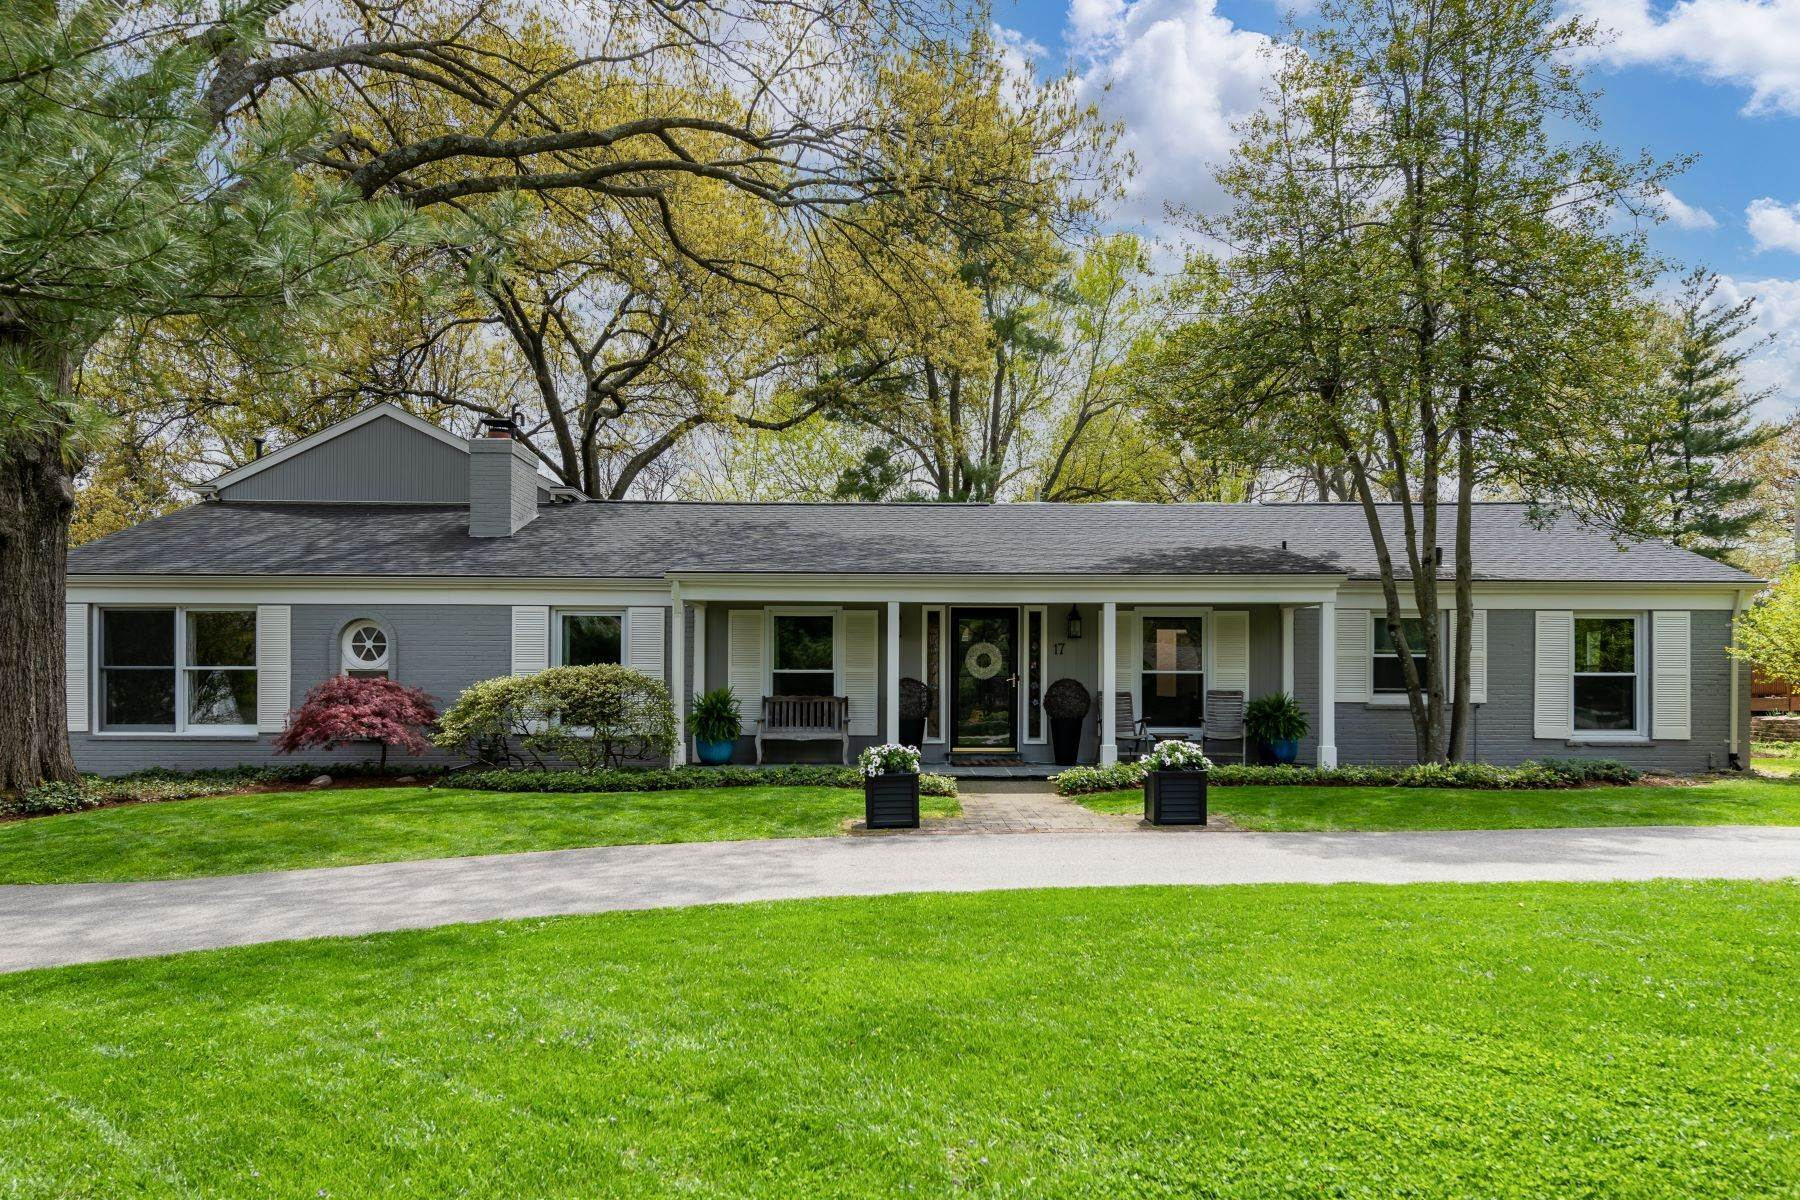 Property for Sale at Mid-Century Home in Creve Coeur 17 Colonial Hills Parkway Creve Coeur, Missouri 63141 United States